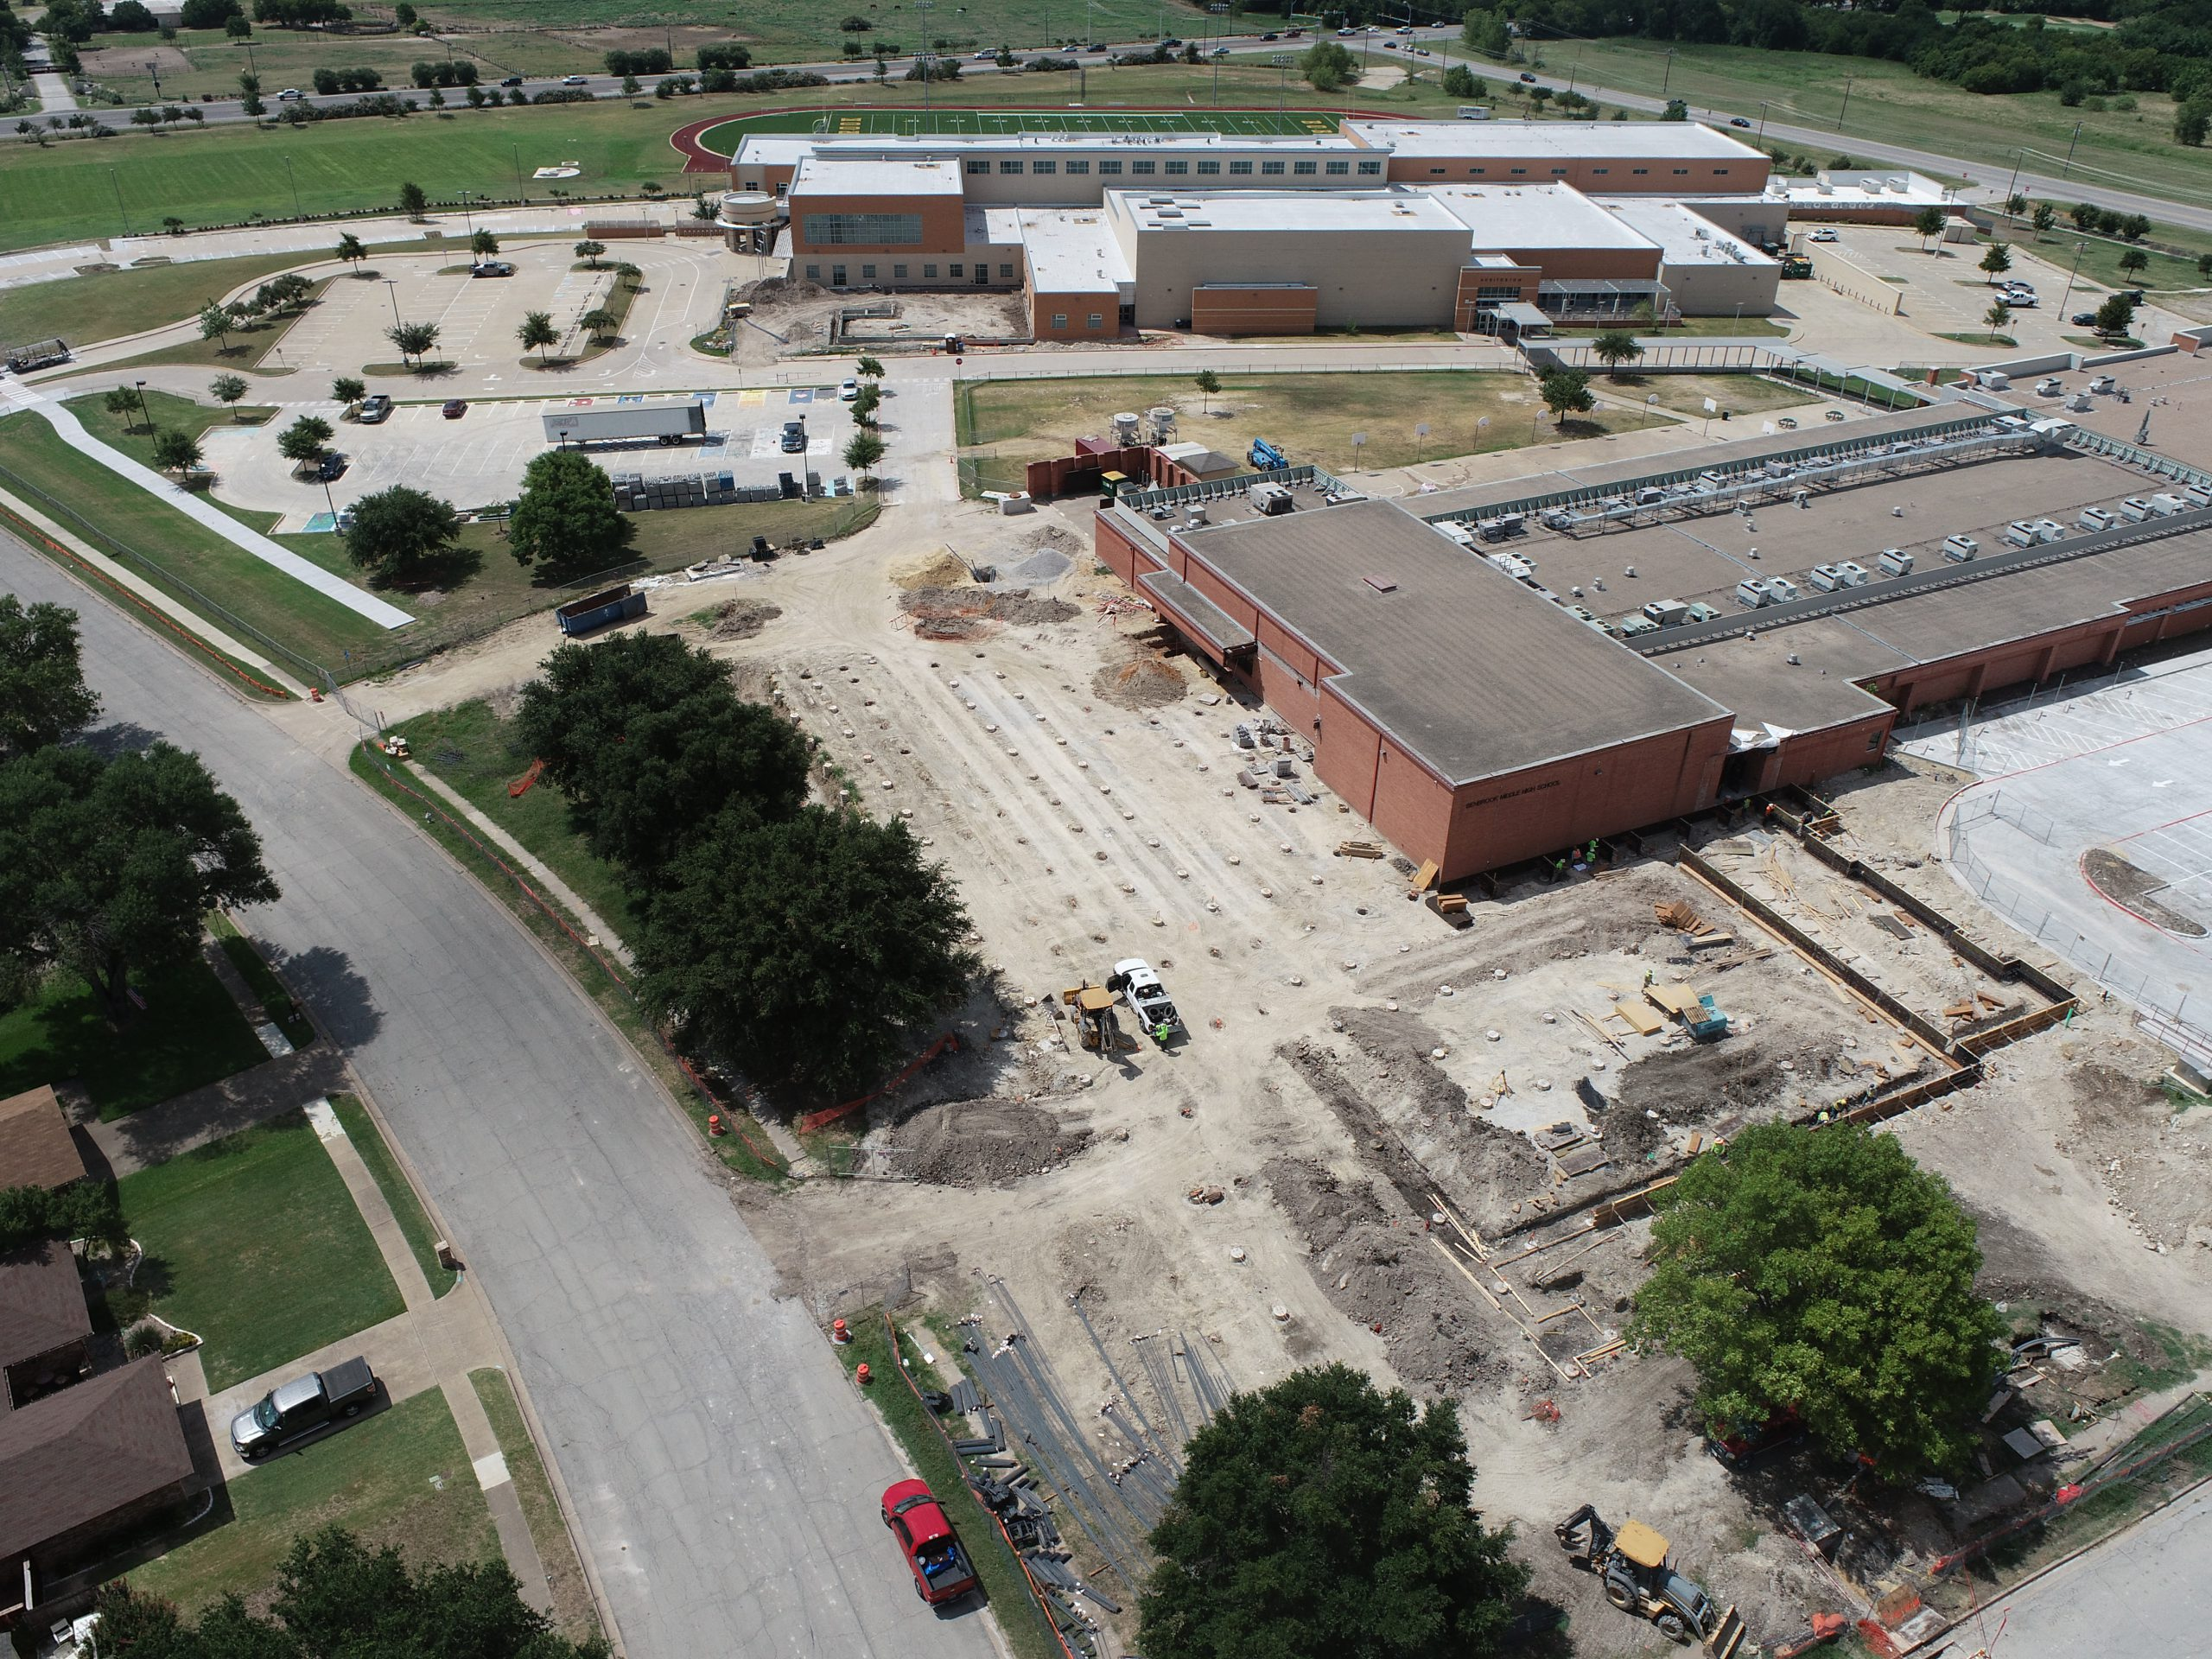 New Building Additions are Shaping Up image 1